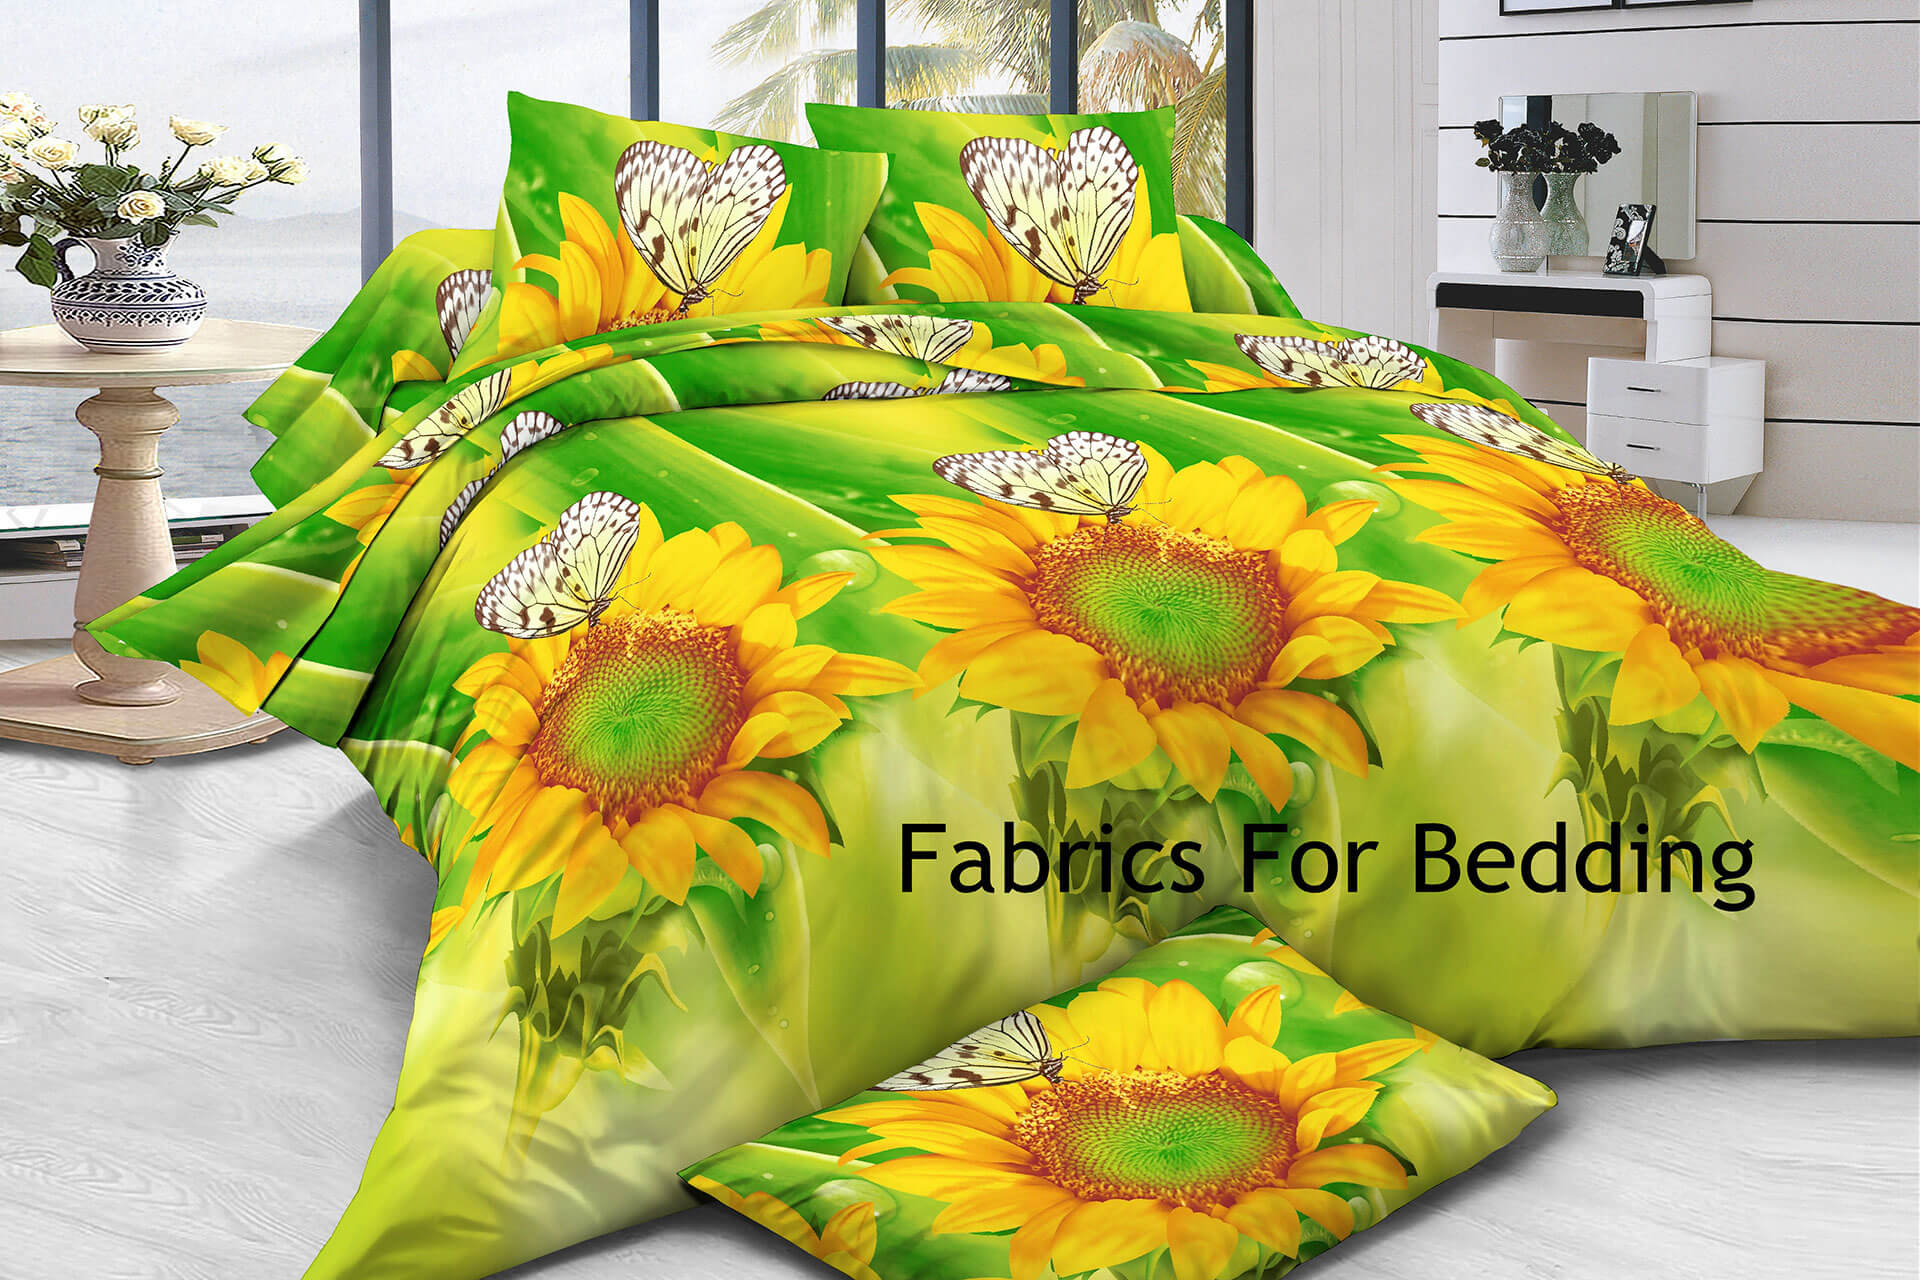 fabrics-for-bedding